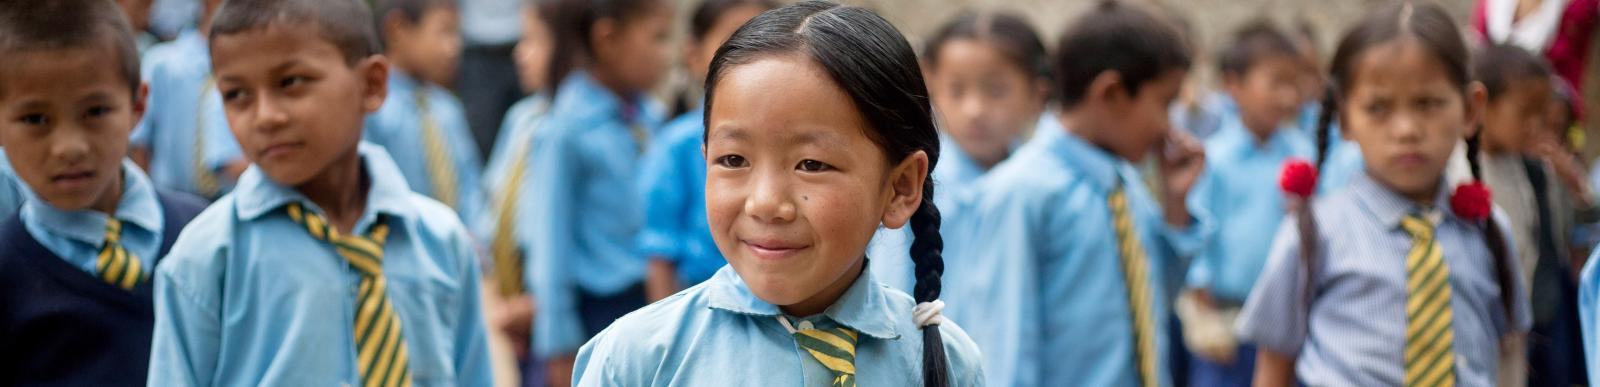 Sanju Rai, 9, during the morning assembly in the school in Nepal